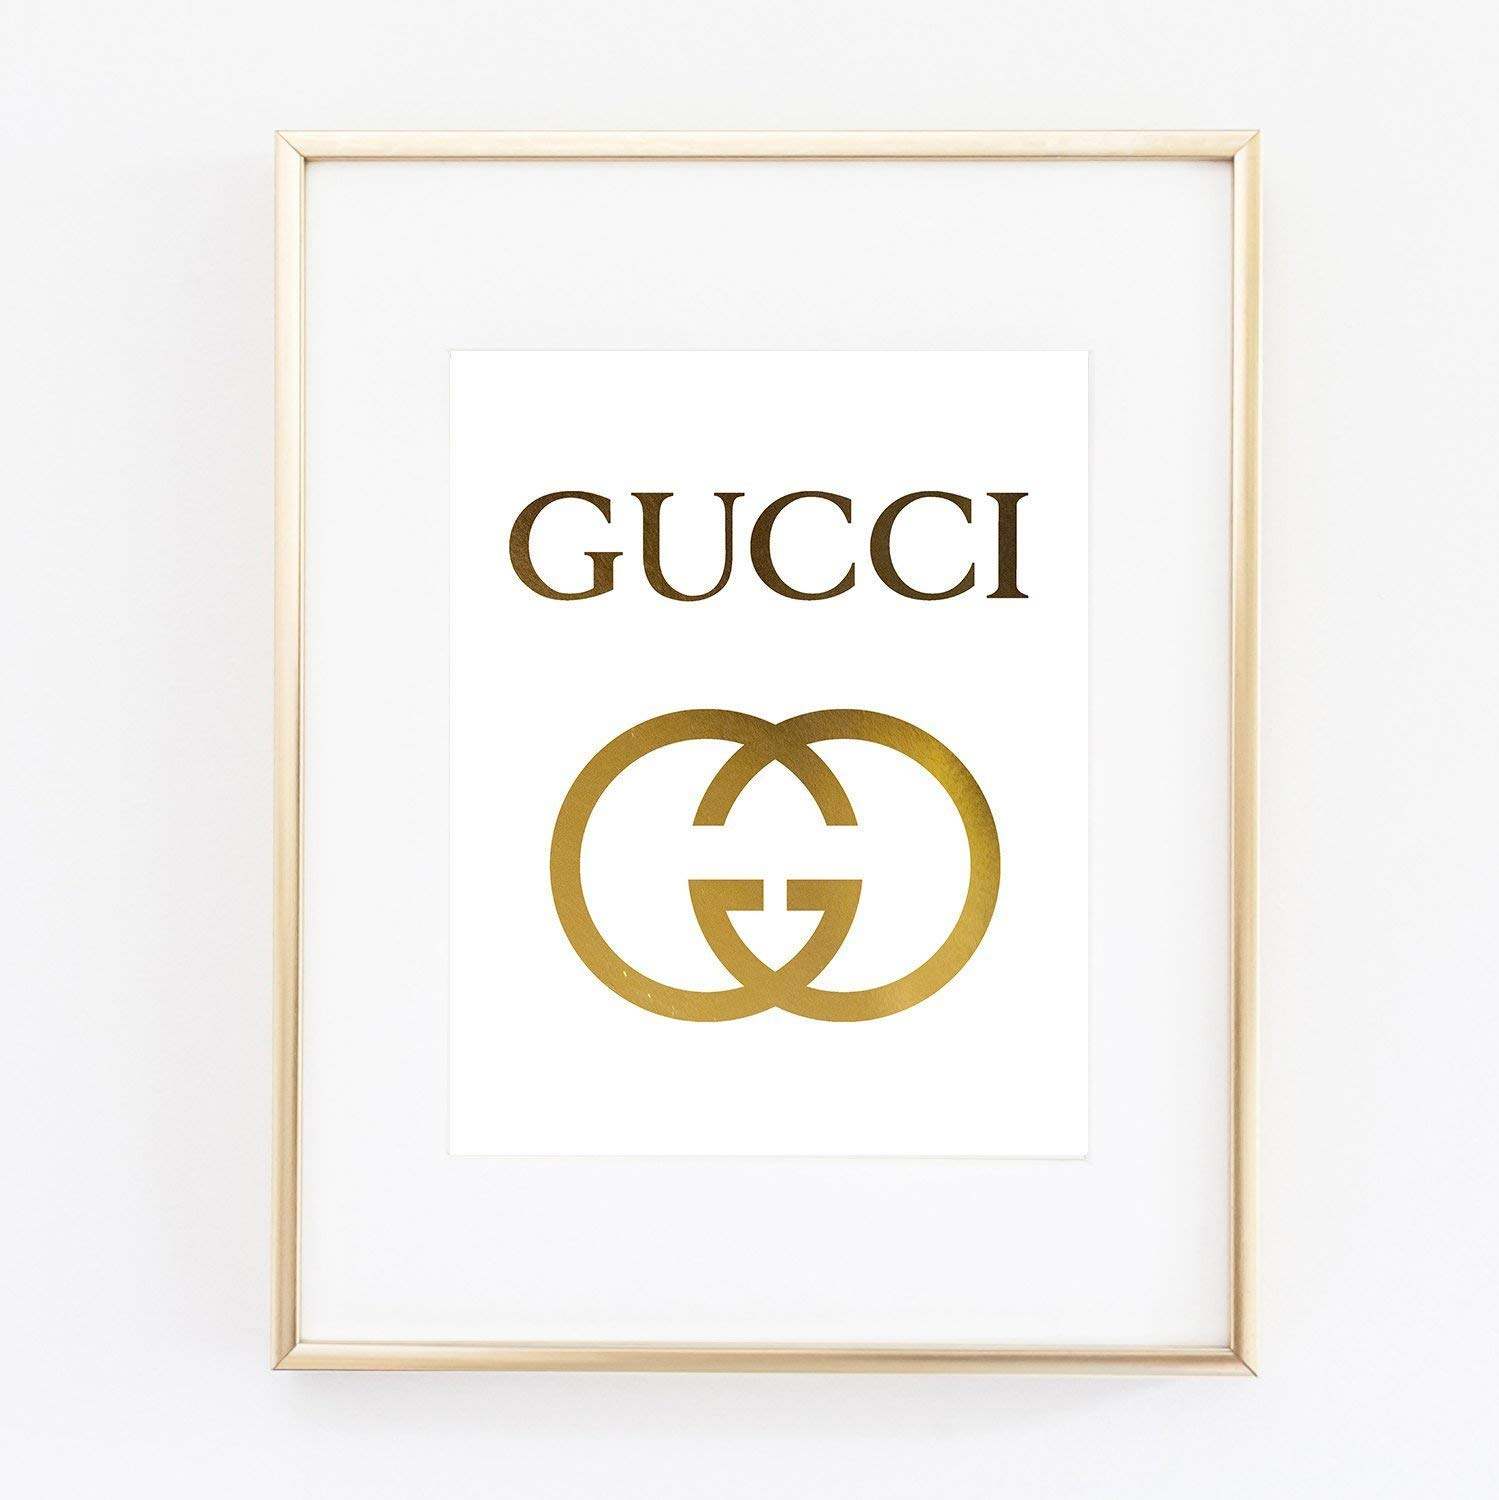 dec412c1633412 Galleon - Gucci Logo Poster Real Gold Foil Print Wall Art Prada Marfa  Distance Like Gossip Girl Fashion Color Gold And White Poster 0541